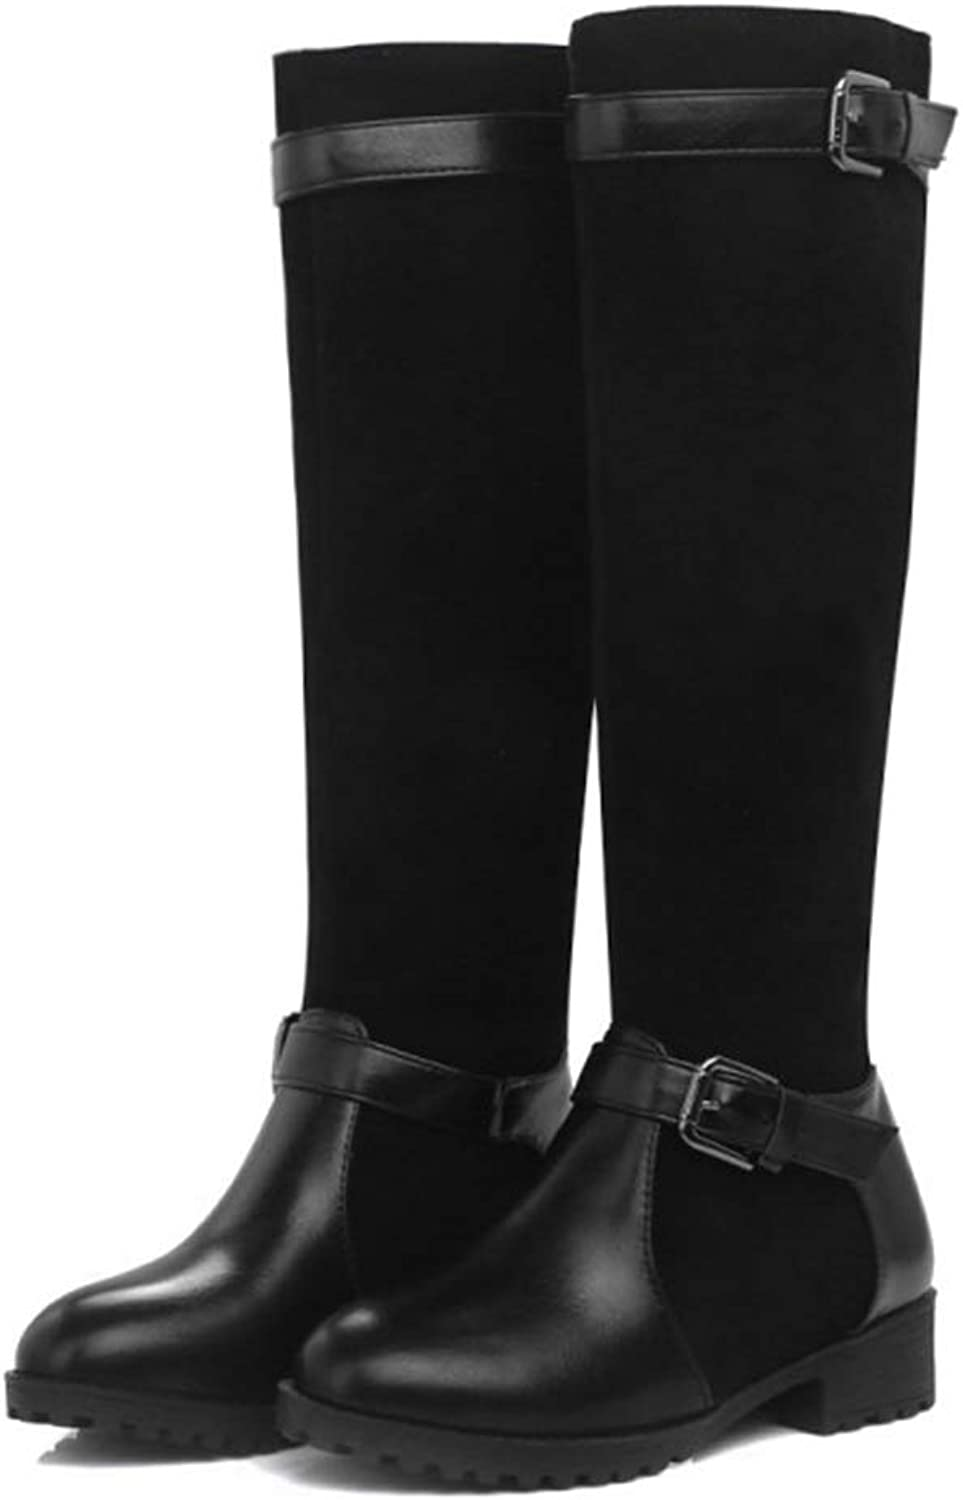 CYBLING Womens Winter Knee High Flat Boots Buckled Tall Western Motorcycle Riding Boots